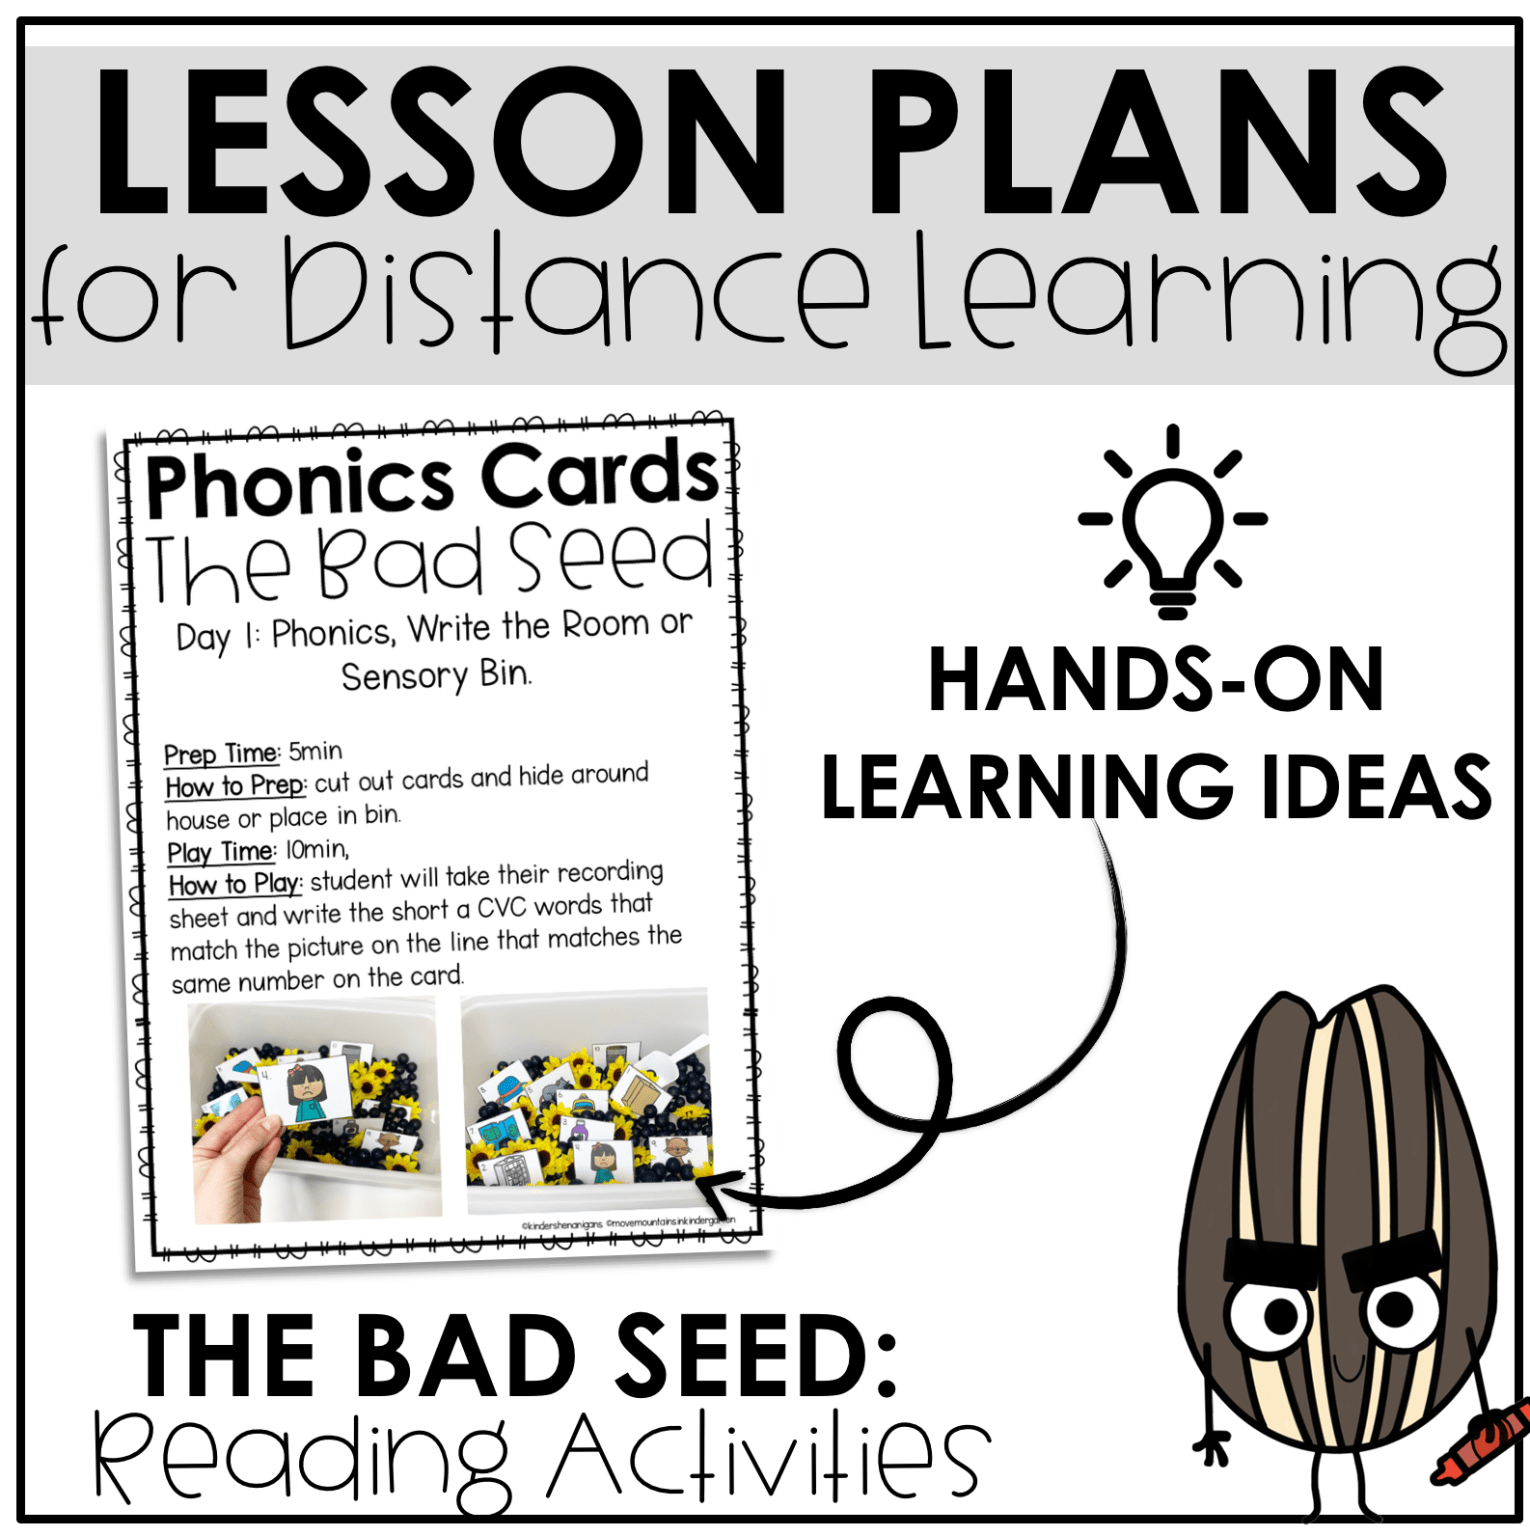 Kindergarten Lesson Plans Week One